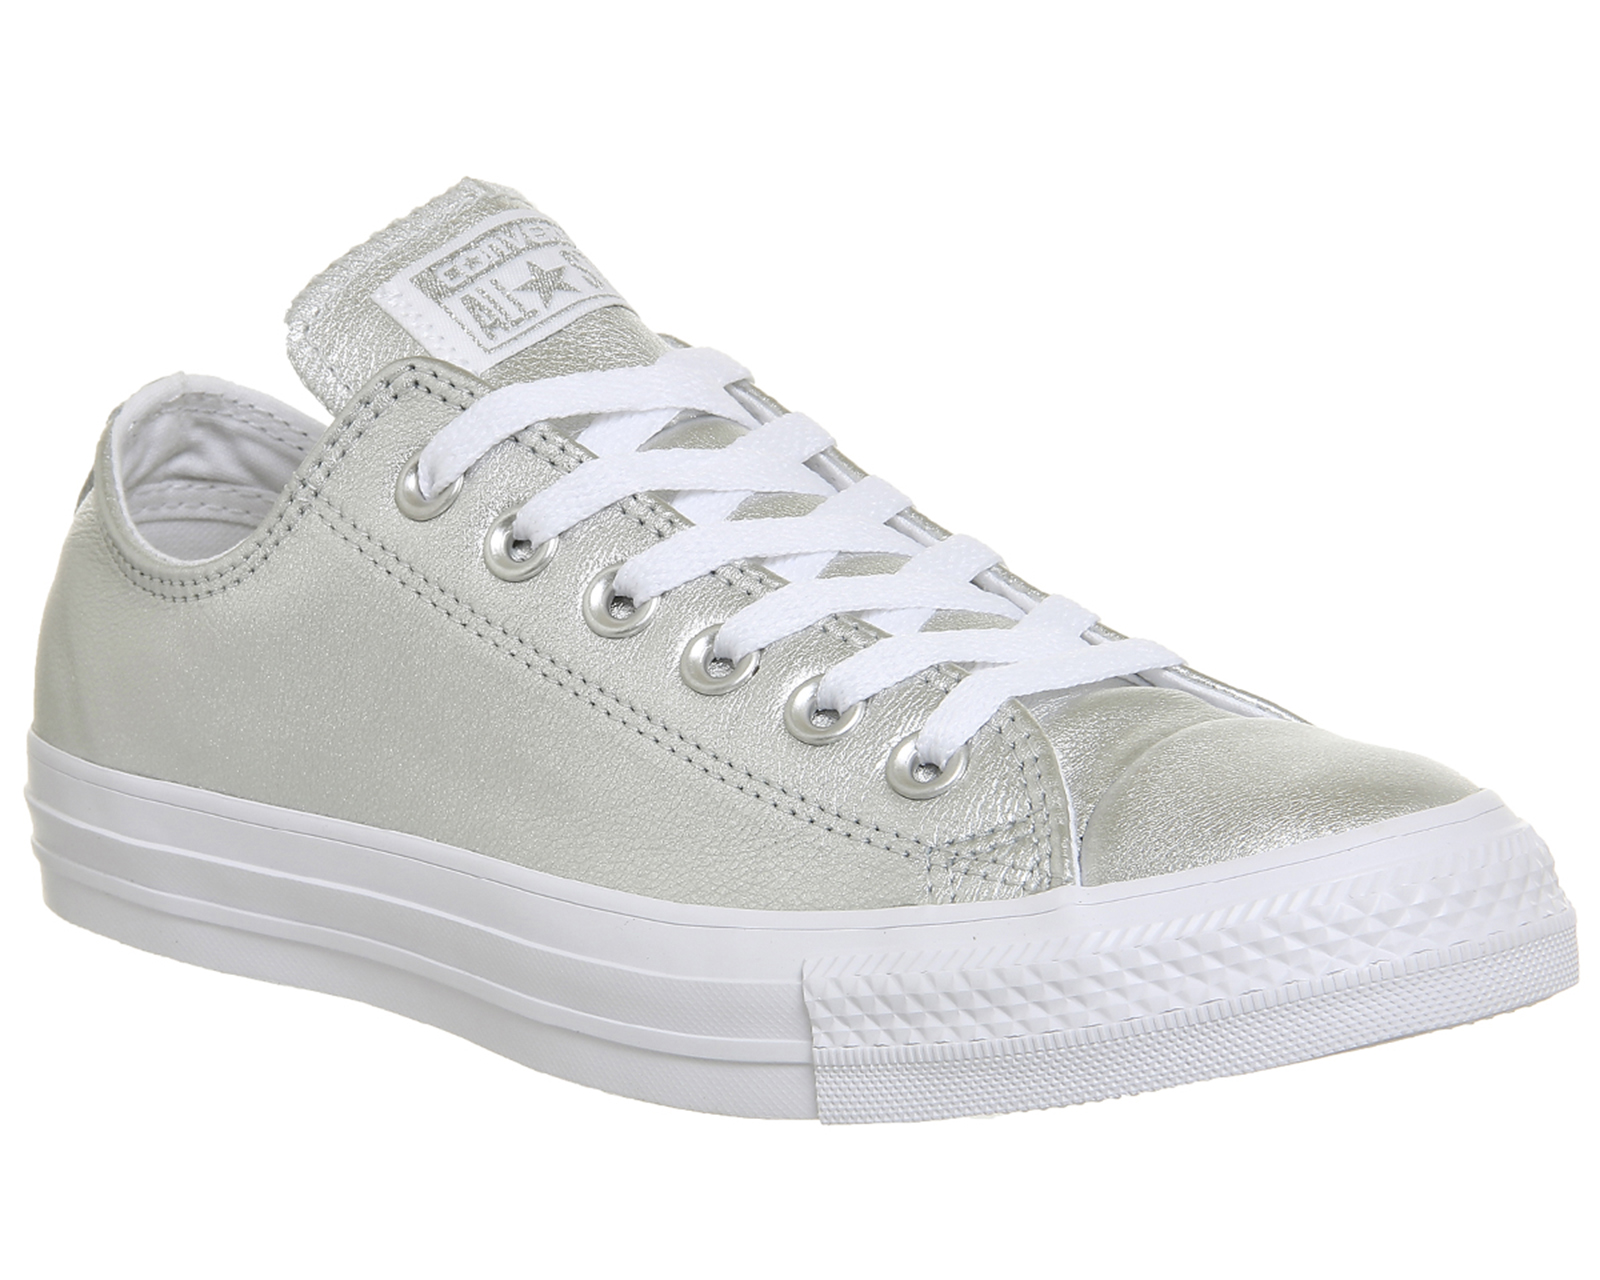 d625002a041f Sentinel Womens Converse All Star Low Leather Pure Silver White Trainers  Shoes